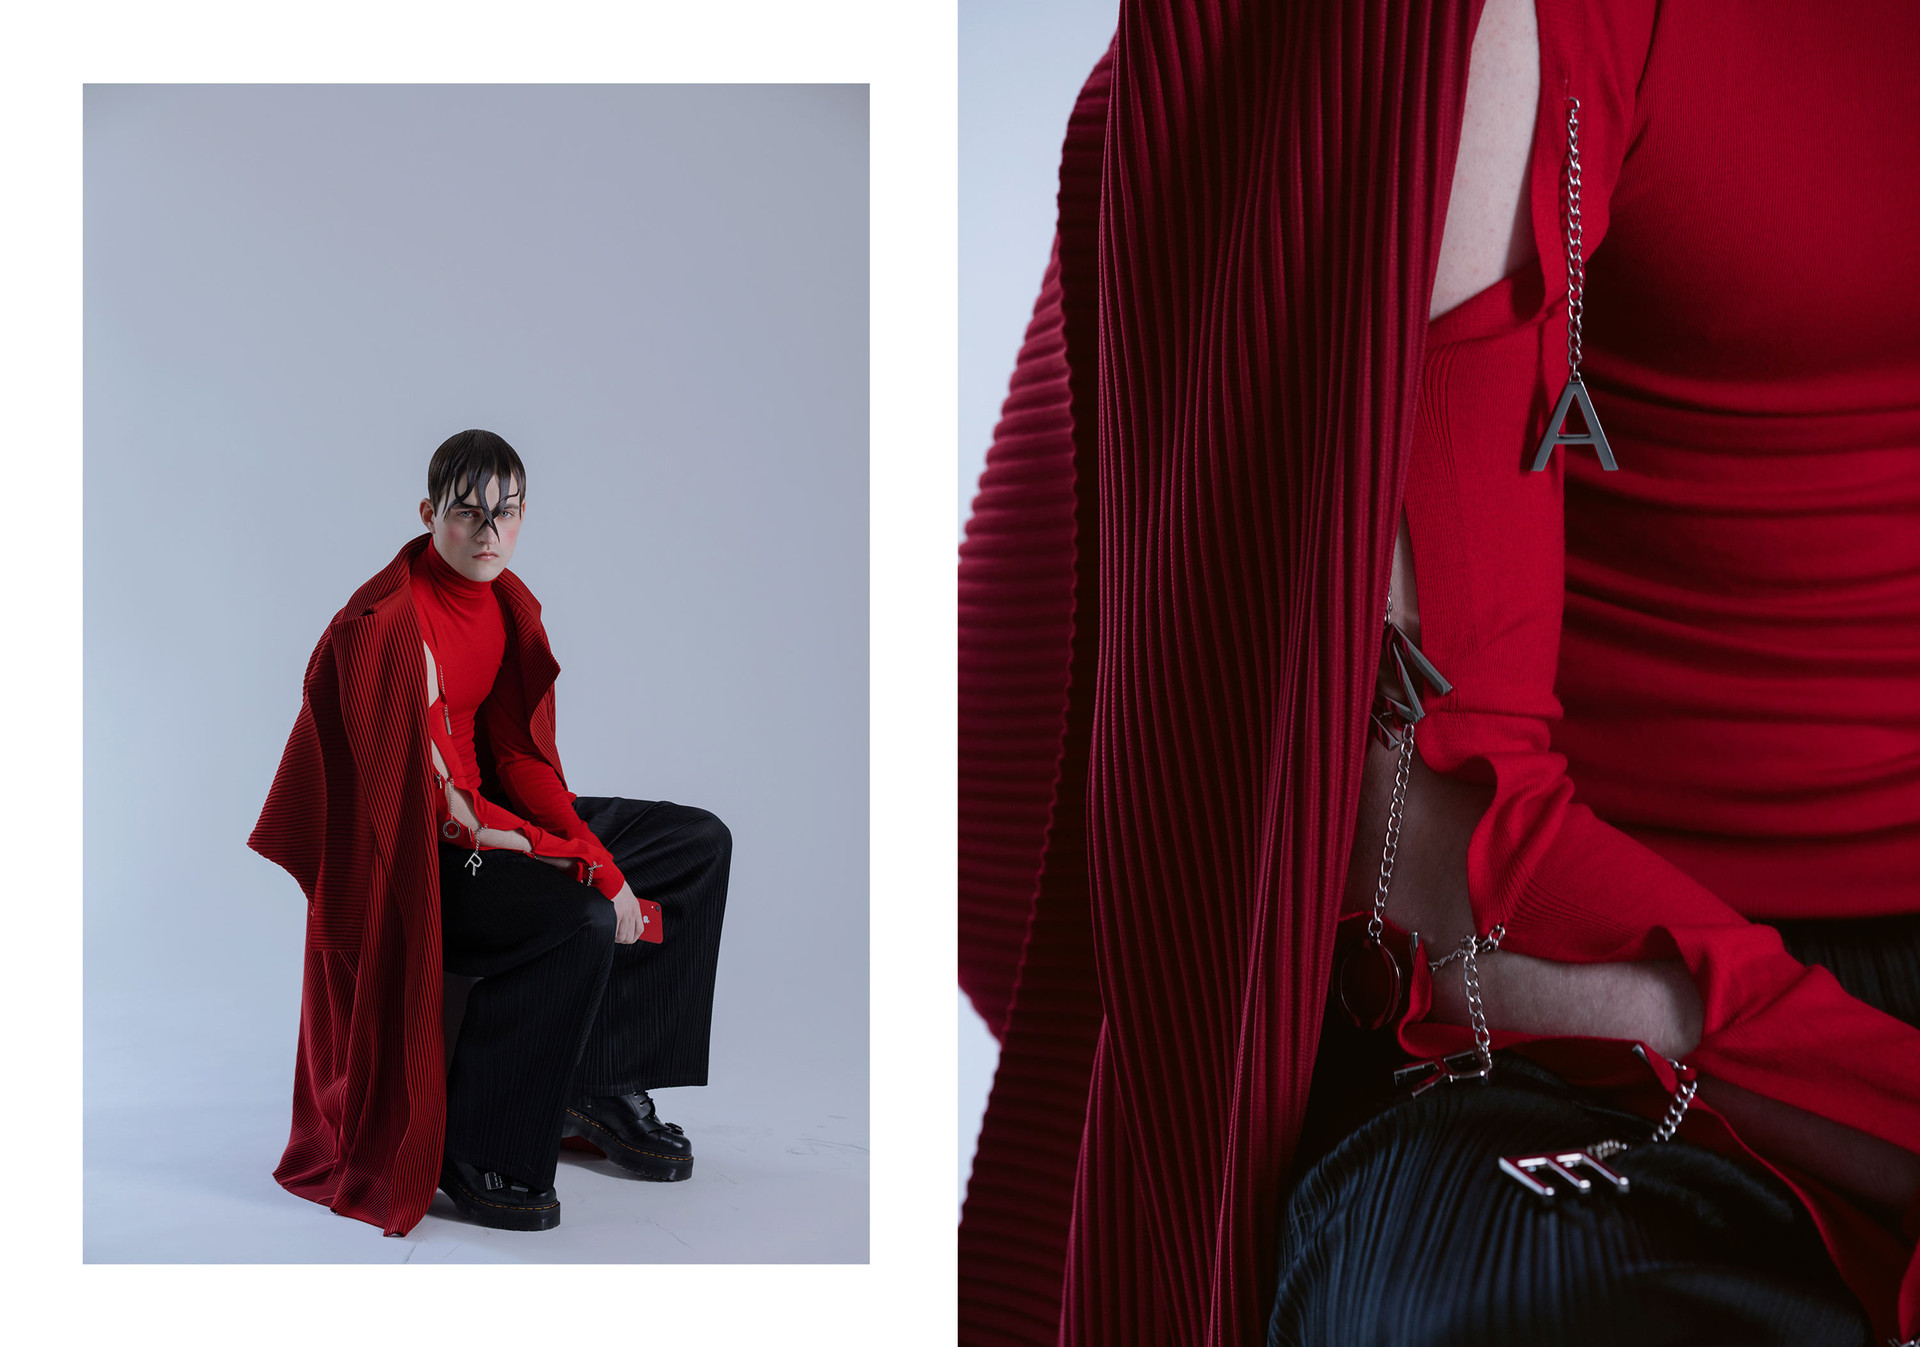 EDITORIAL_theSilhouettes_UH_6011.jpg